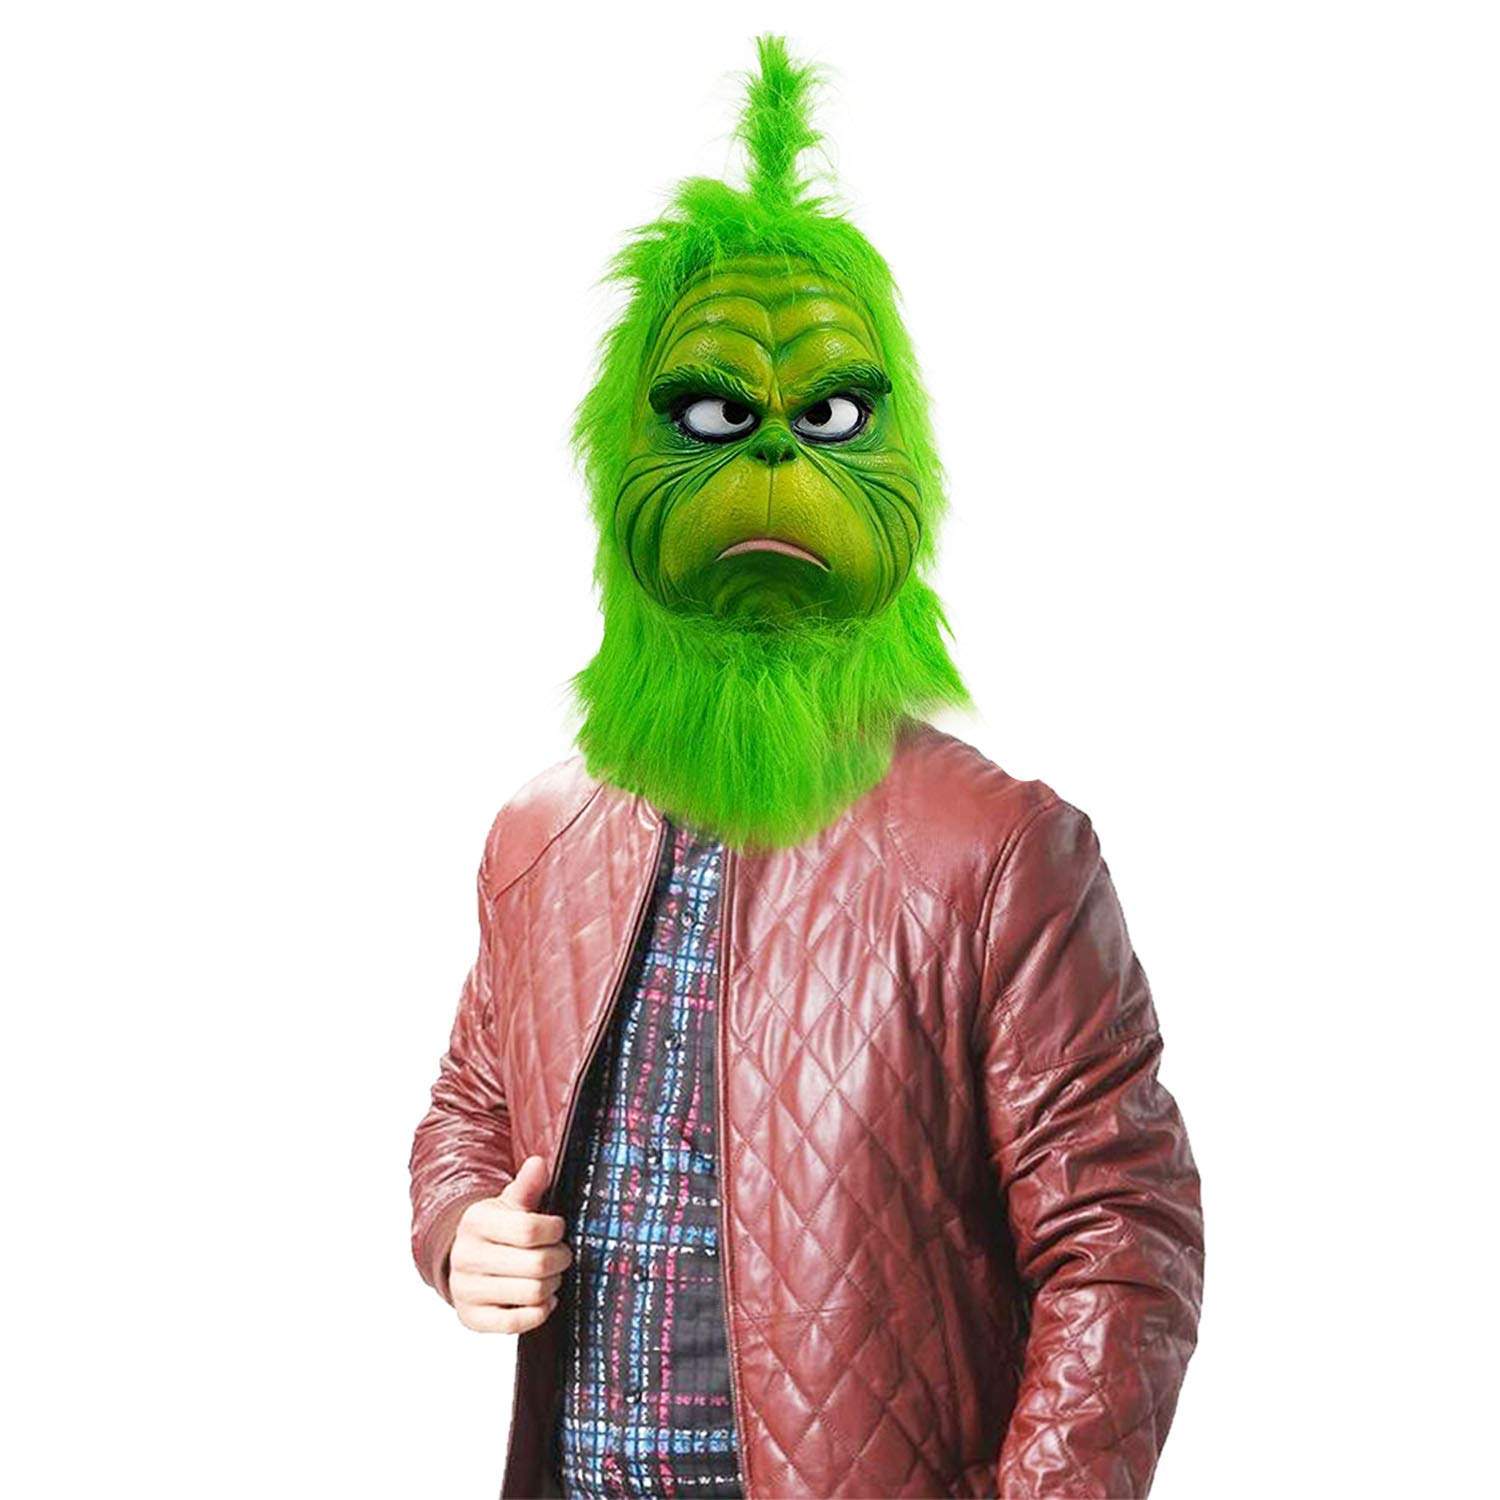 c735989657e Amazon.com: Grinch Mask Costume Face Adult - Deluxe Full Head Latex Mr  Grinch Mask Kids Cosplay (GR-1): Clothing